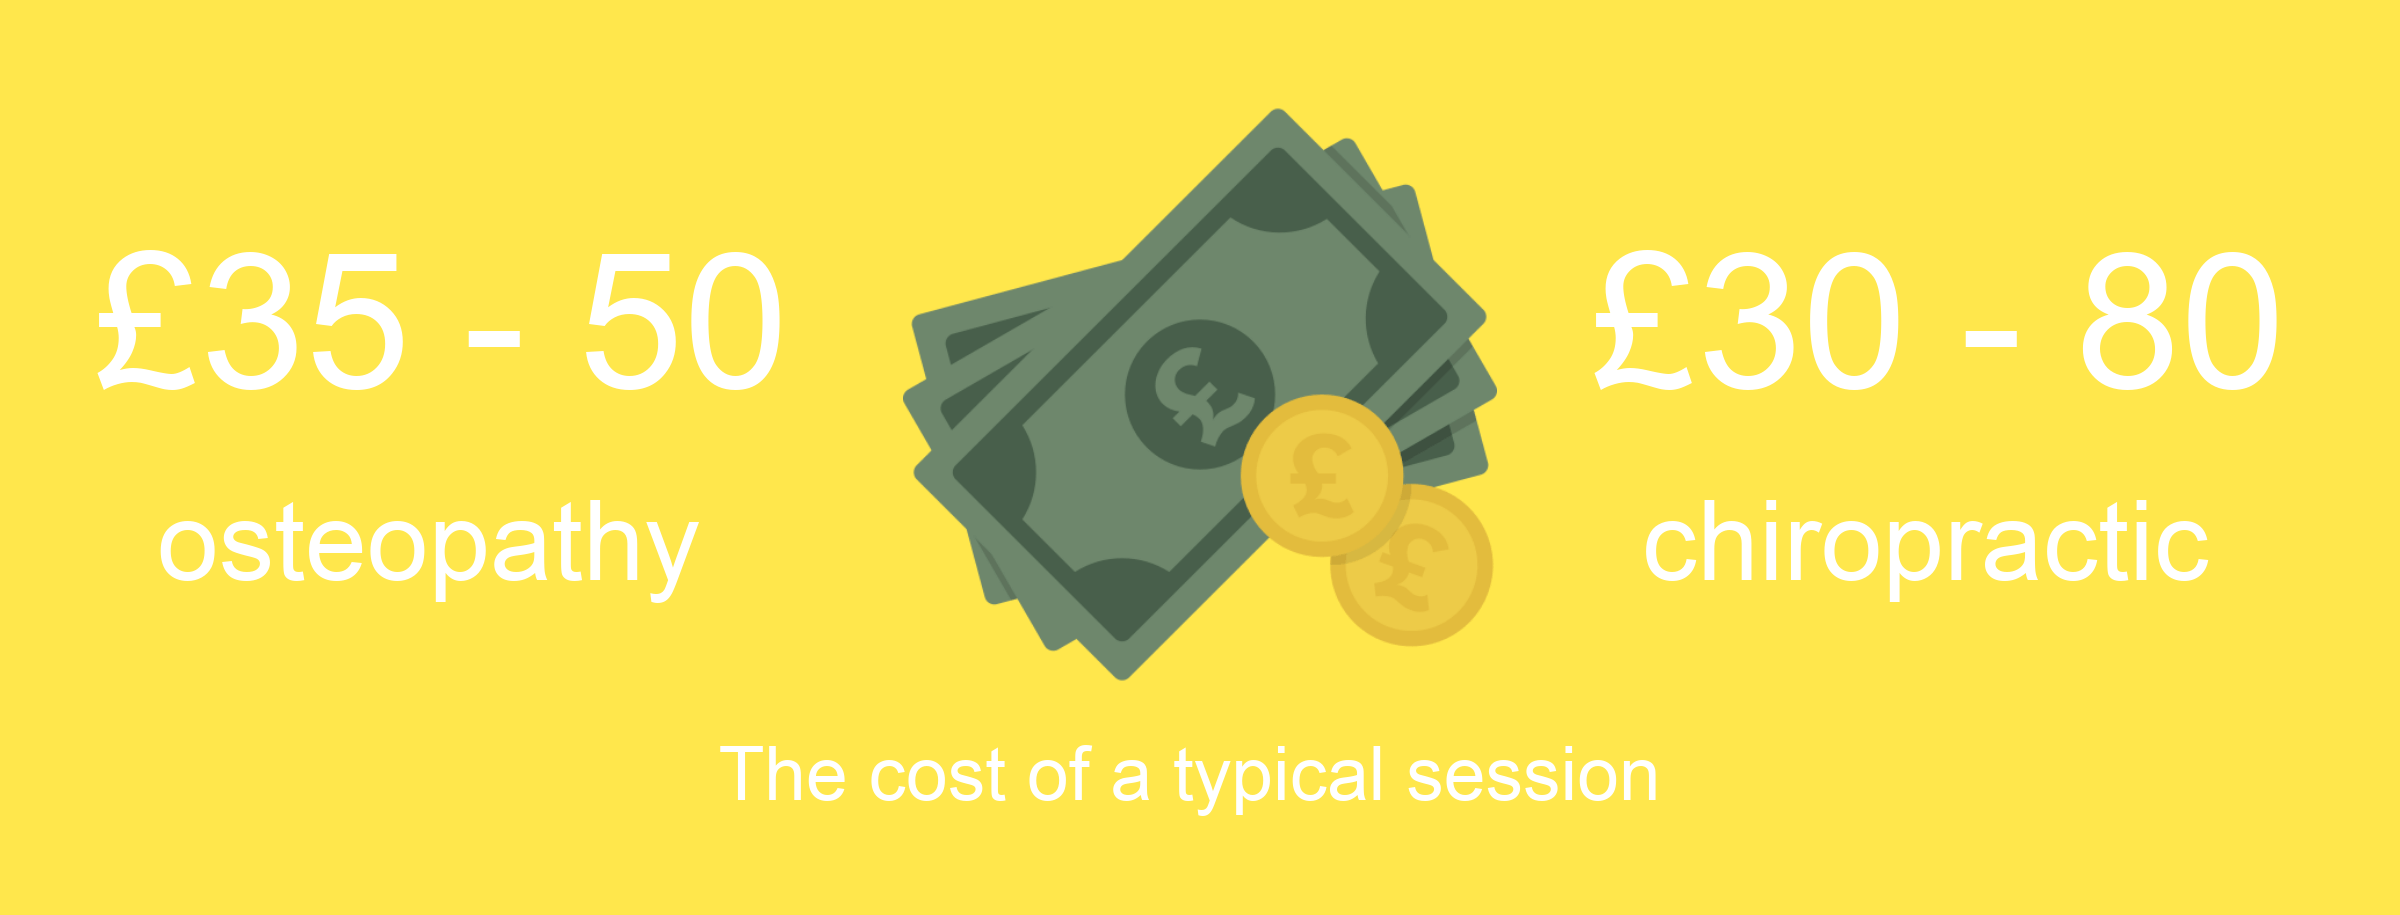 The price of a chiropractic and osteopathy session